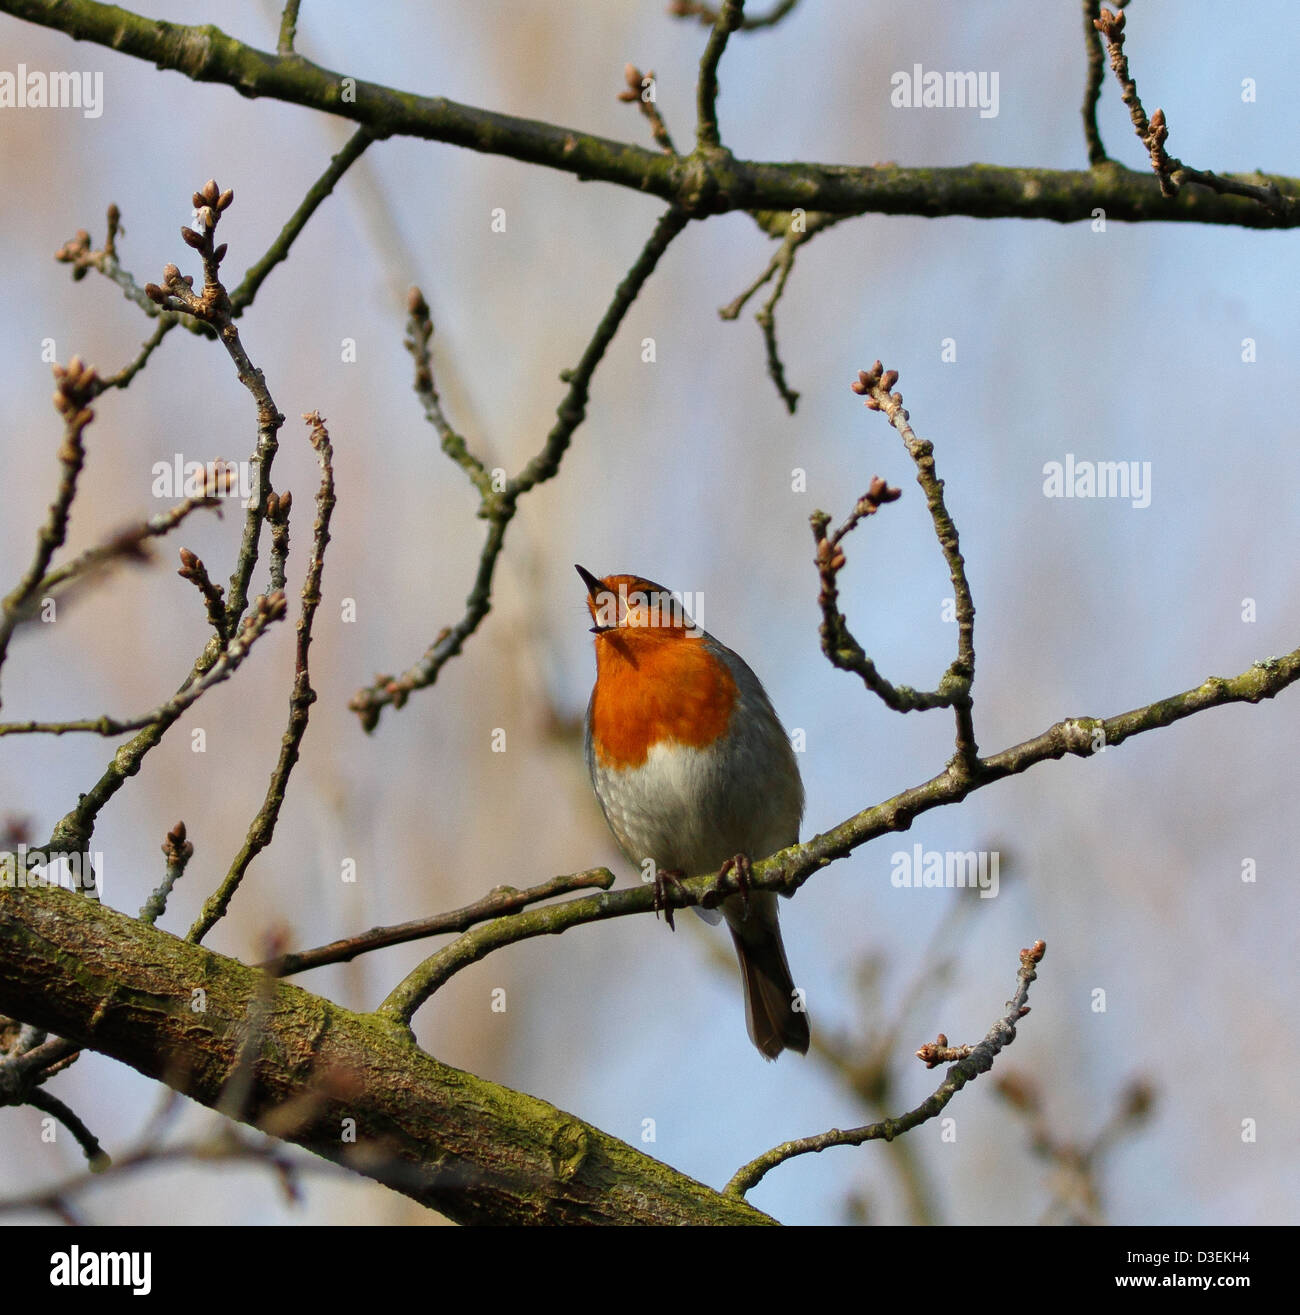 robin-redbreast-singing-in-tree-D3EKH4.jpg